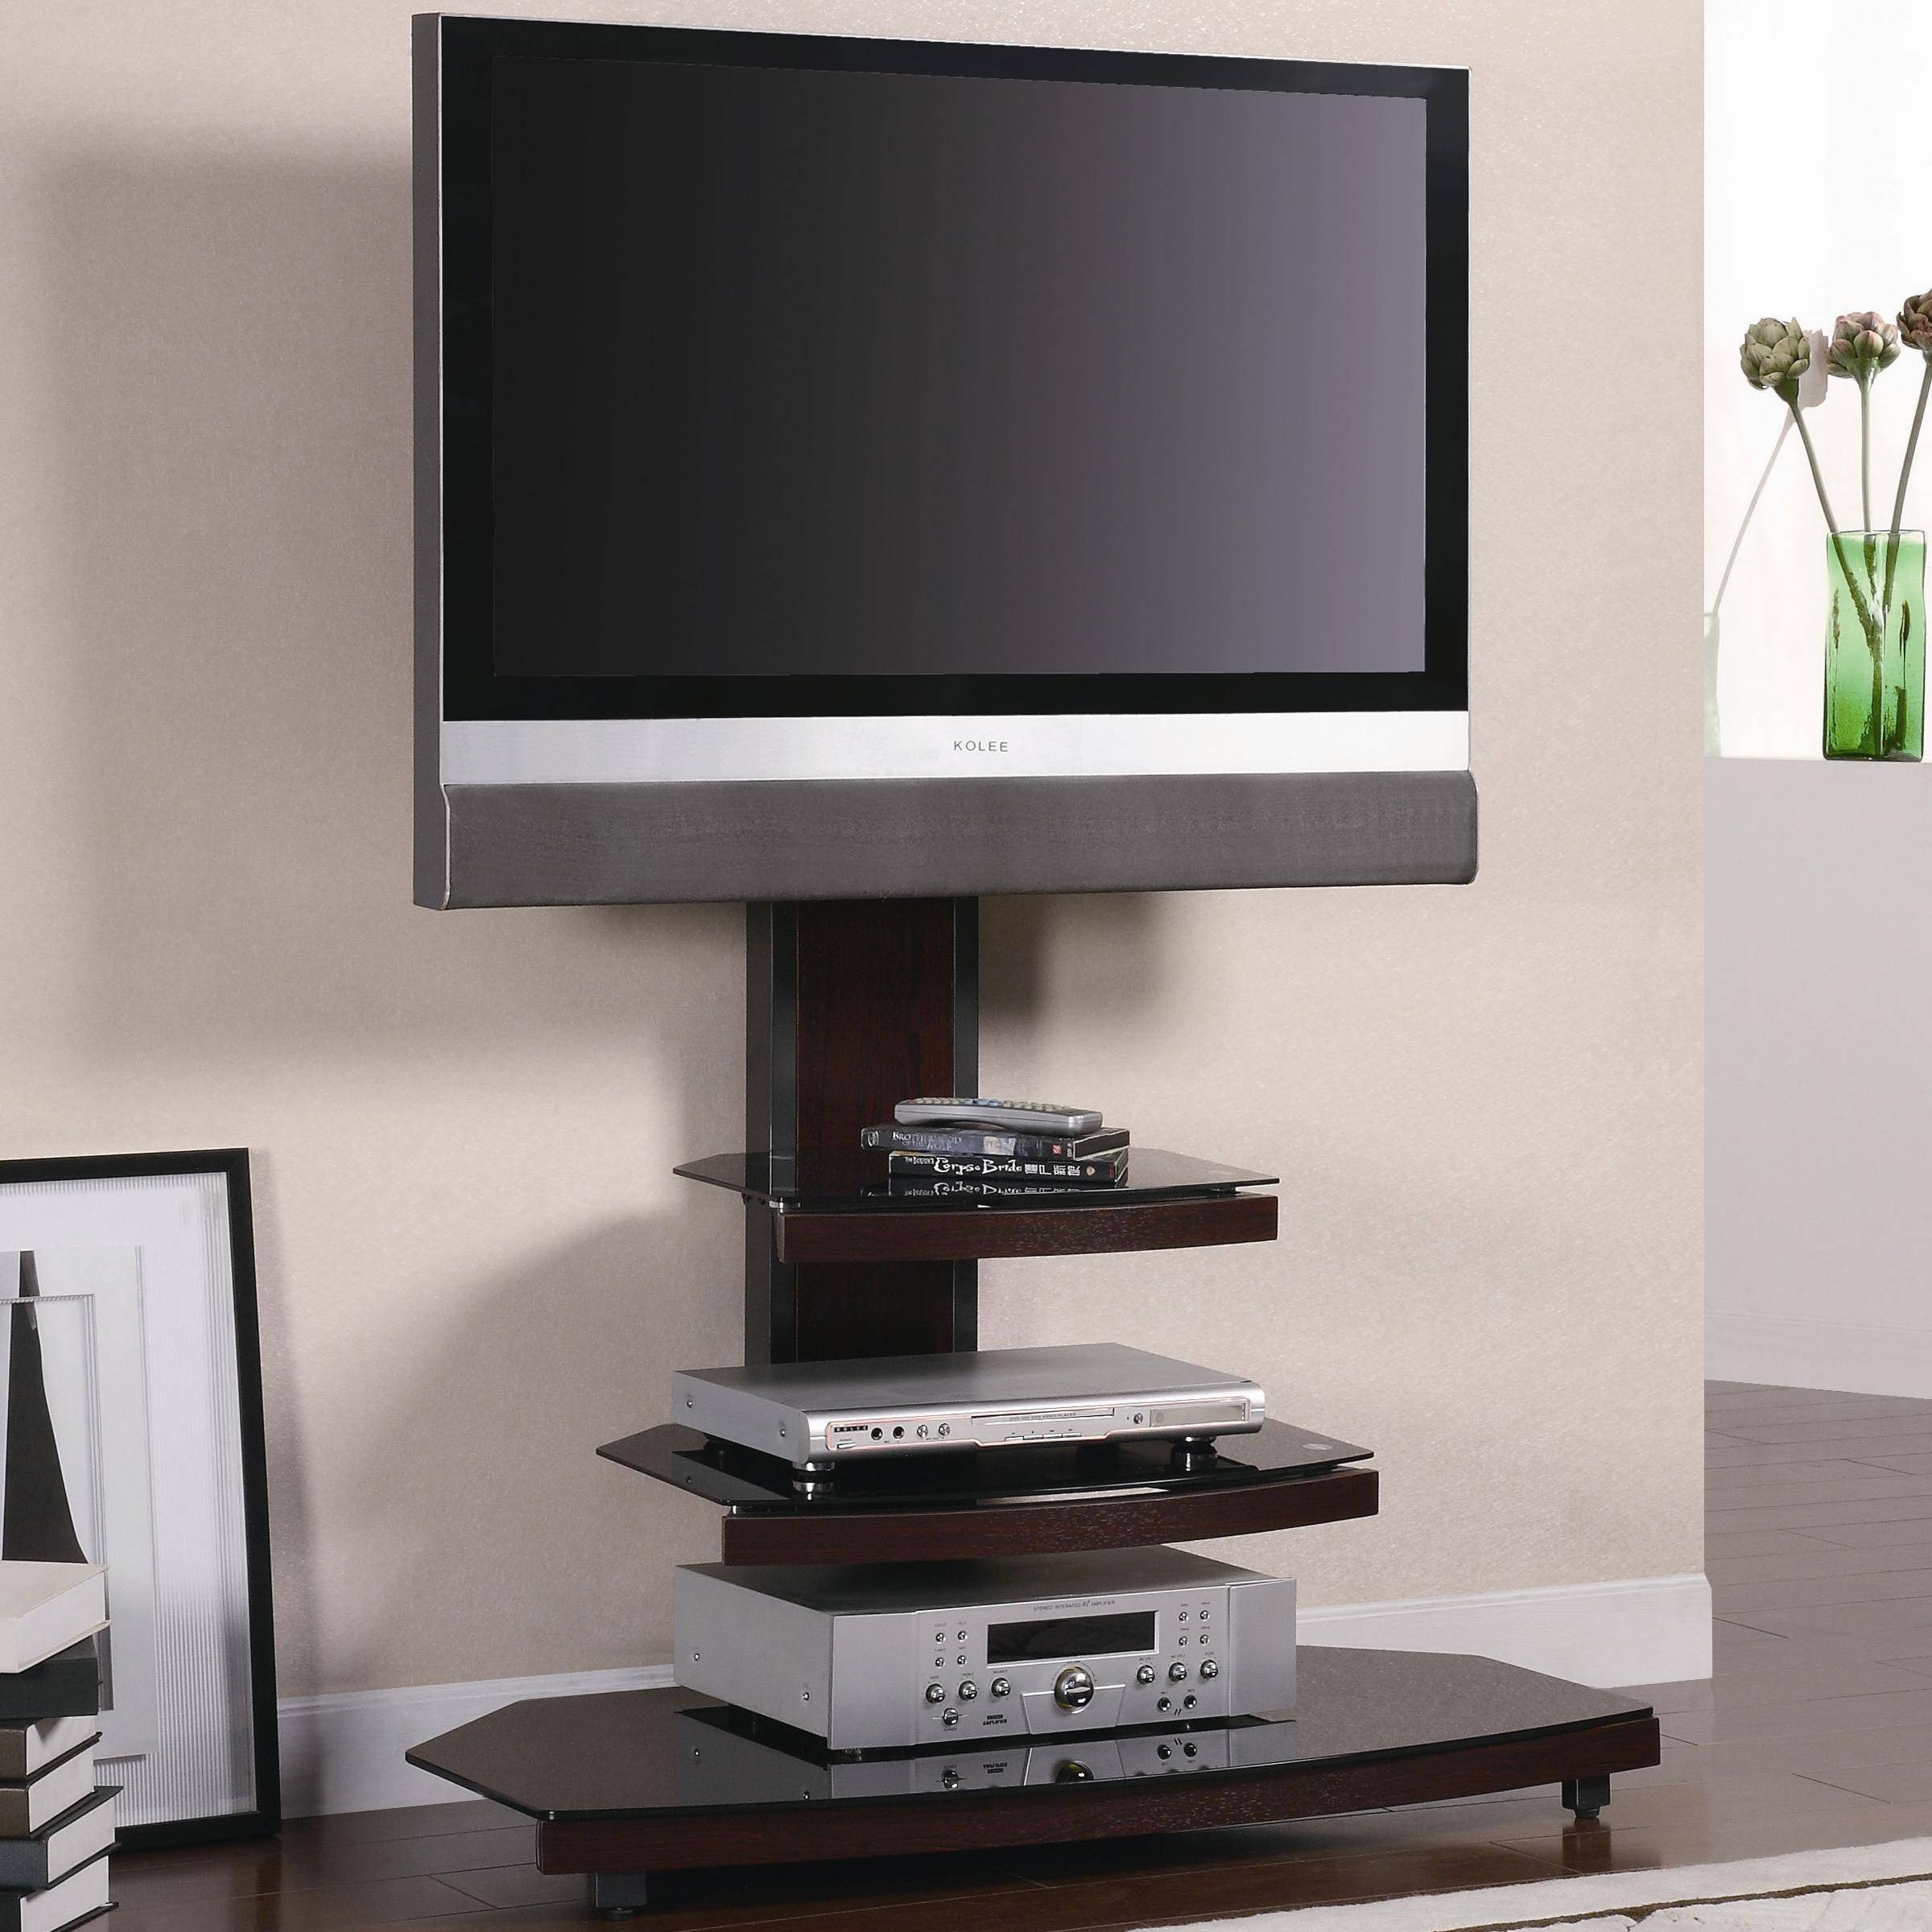 Sense Of Style Tv Stands - Home Decorating Designs intended for Ultra Modern Tv Stands (Image 10 of 15)